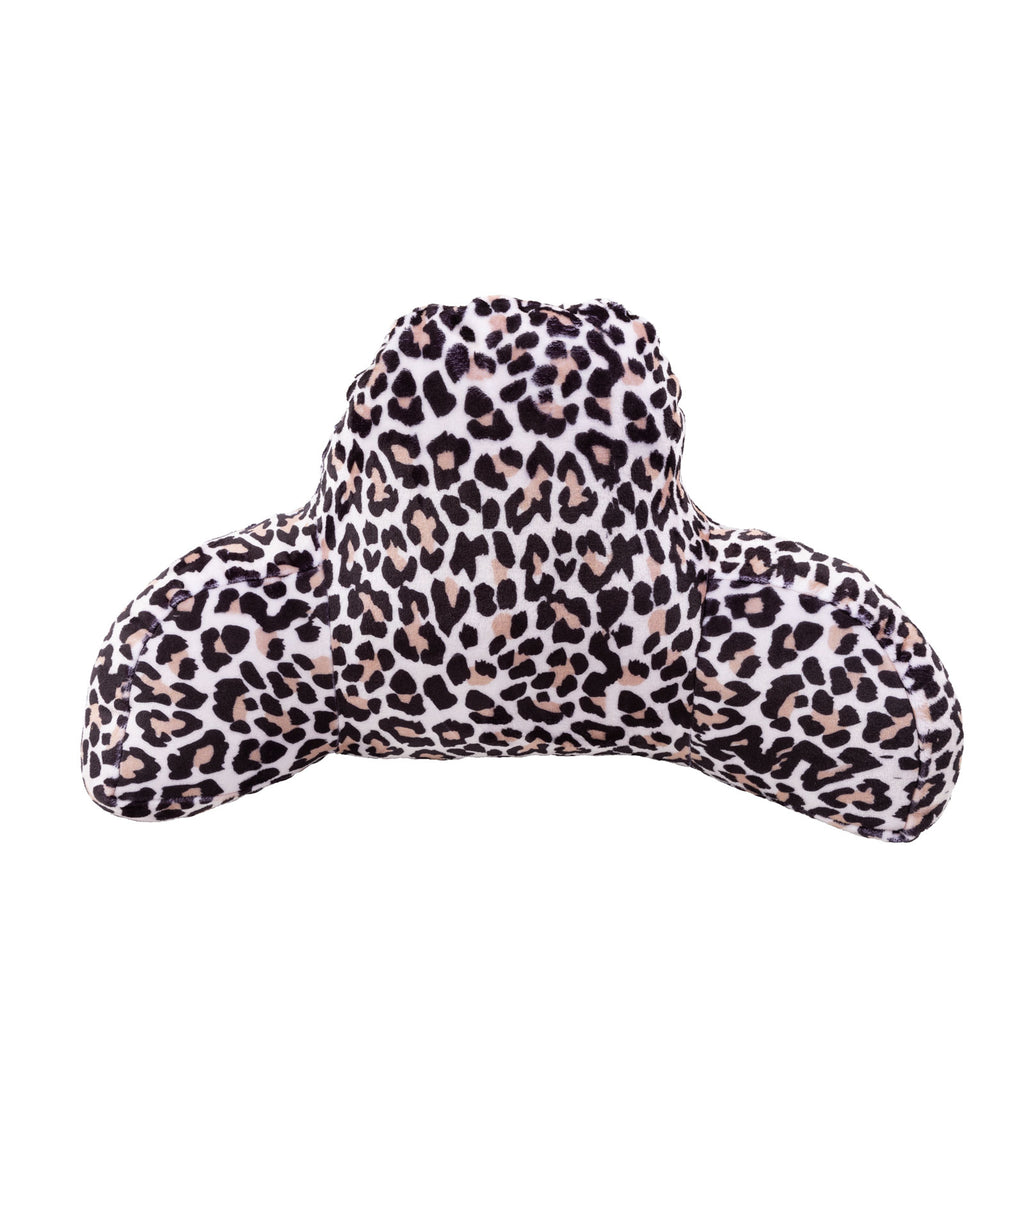 Penelope Wildberry Leopard Chair Pillow